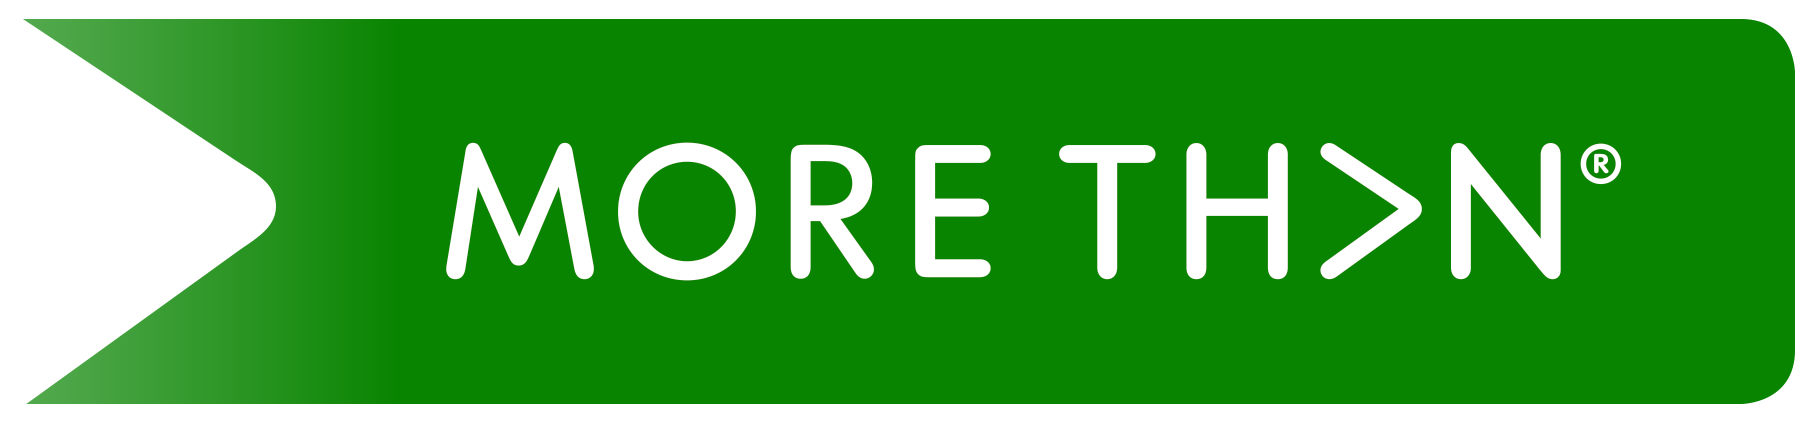 we-do-more-than-logo-1.png